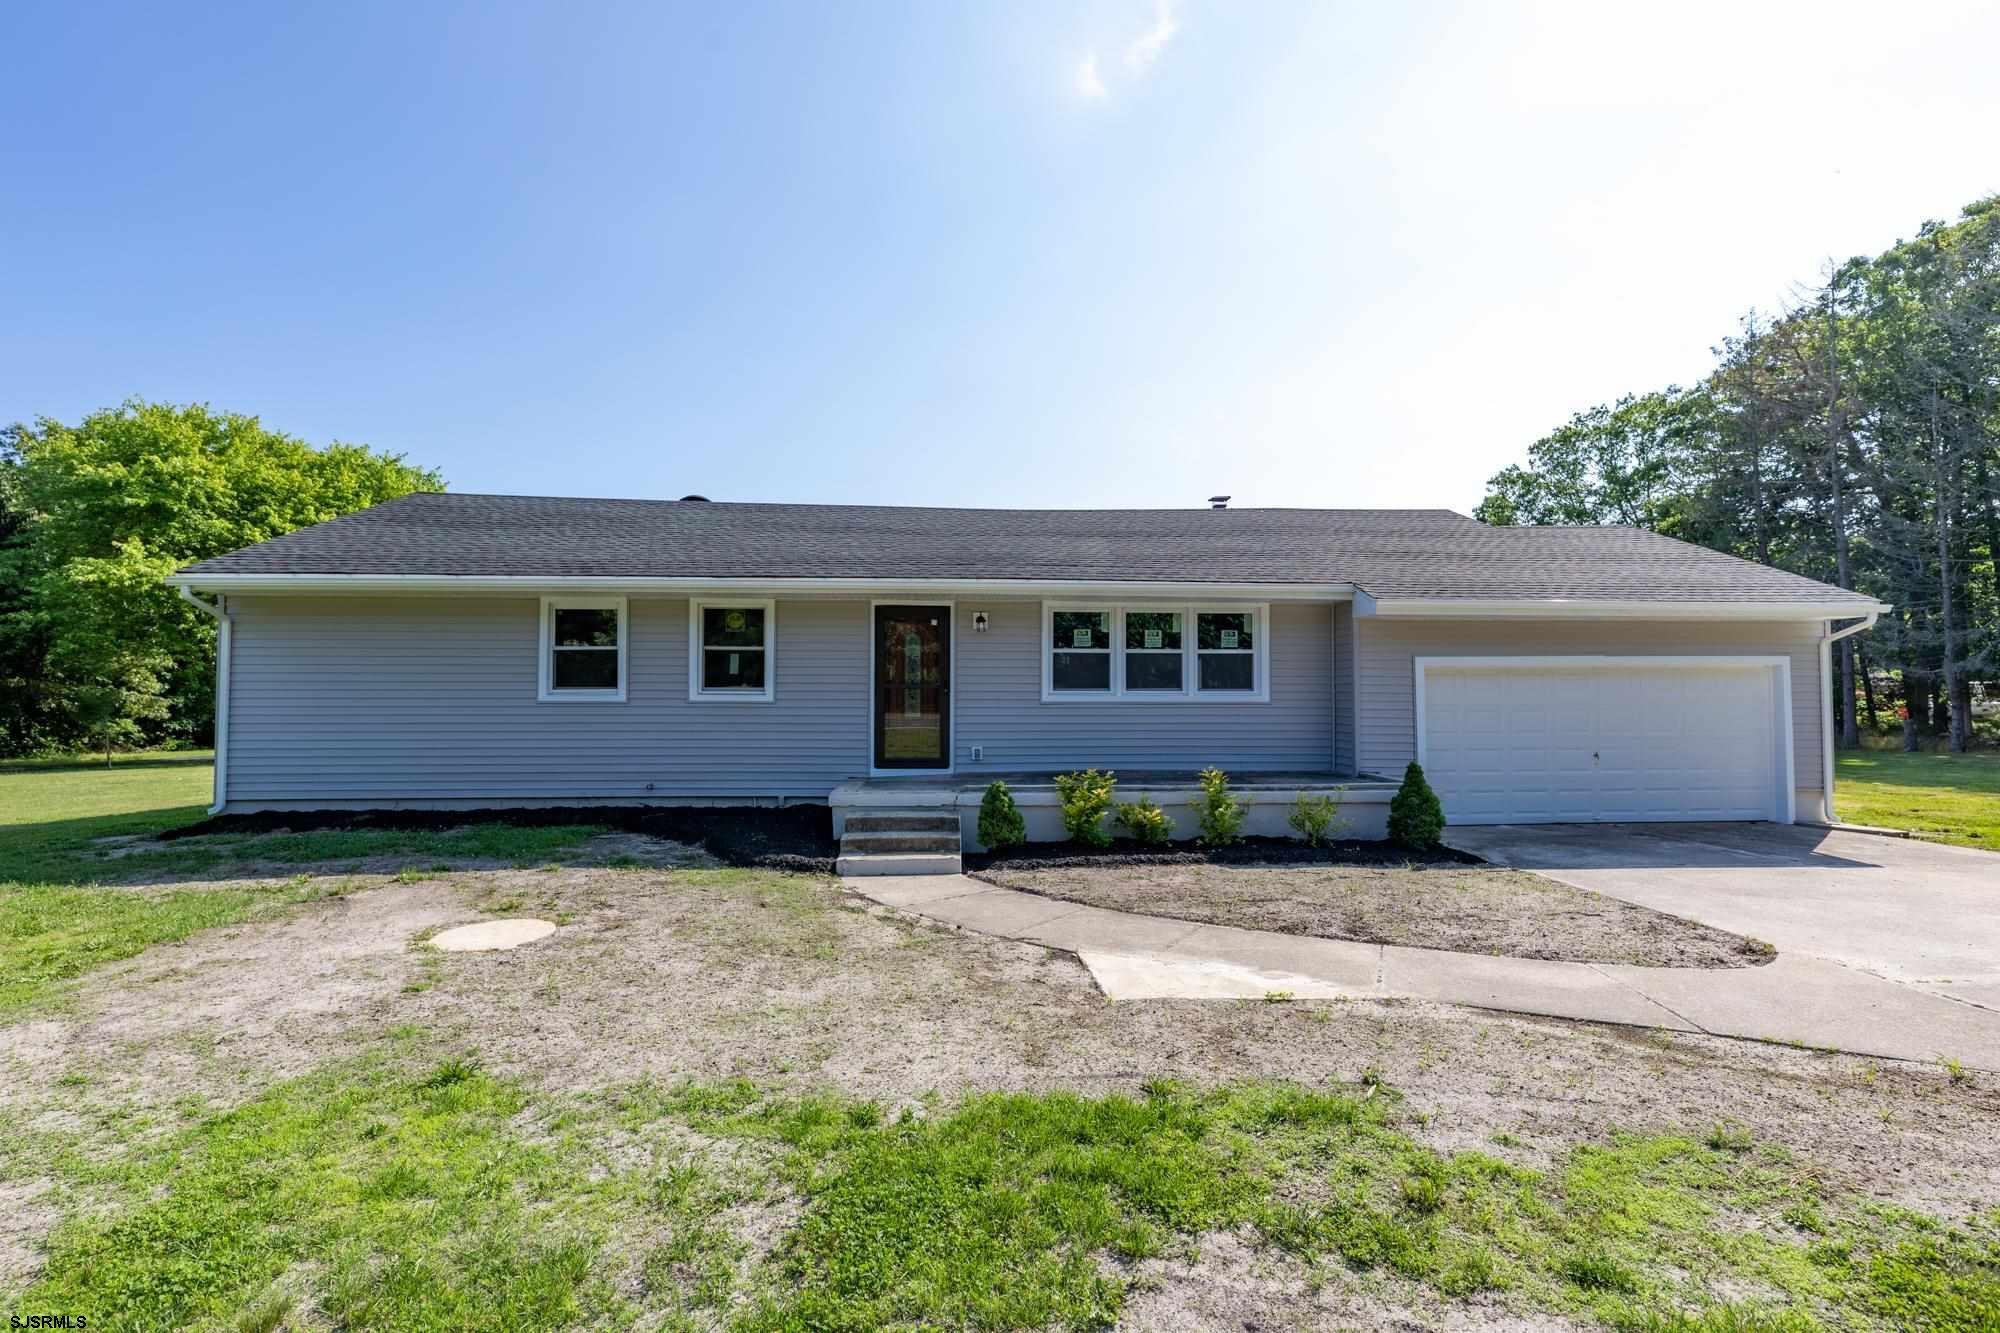 Come check out this custom large rancher located on over 1.79 acres in galloway on Jimmie Leeds Rd.